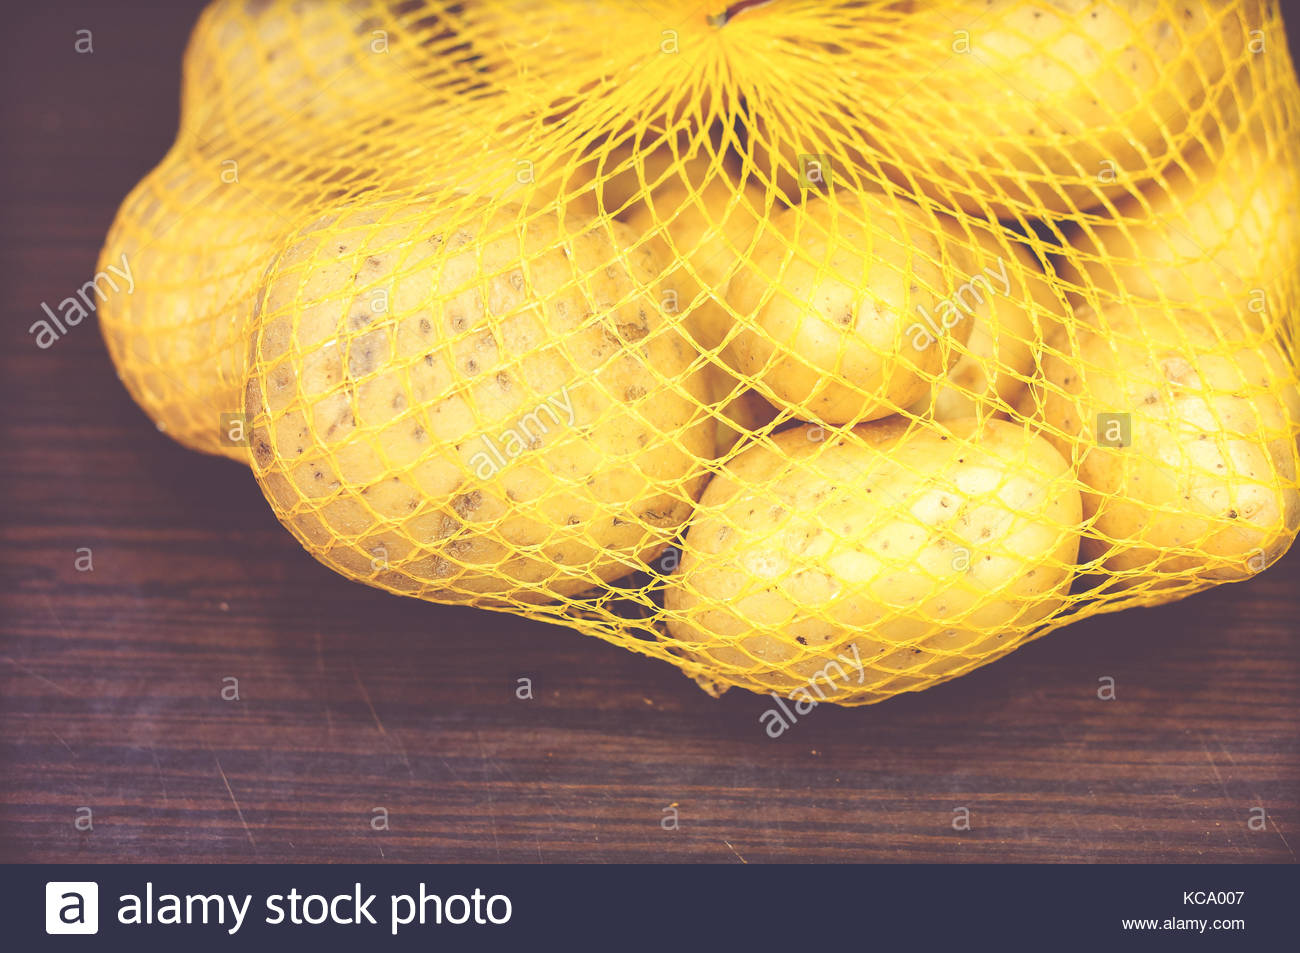 Fresh potatoes in a net on wooden table in soft focus - Stock Image